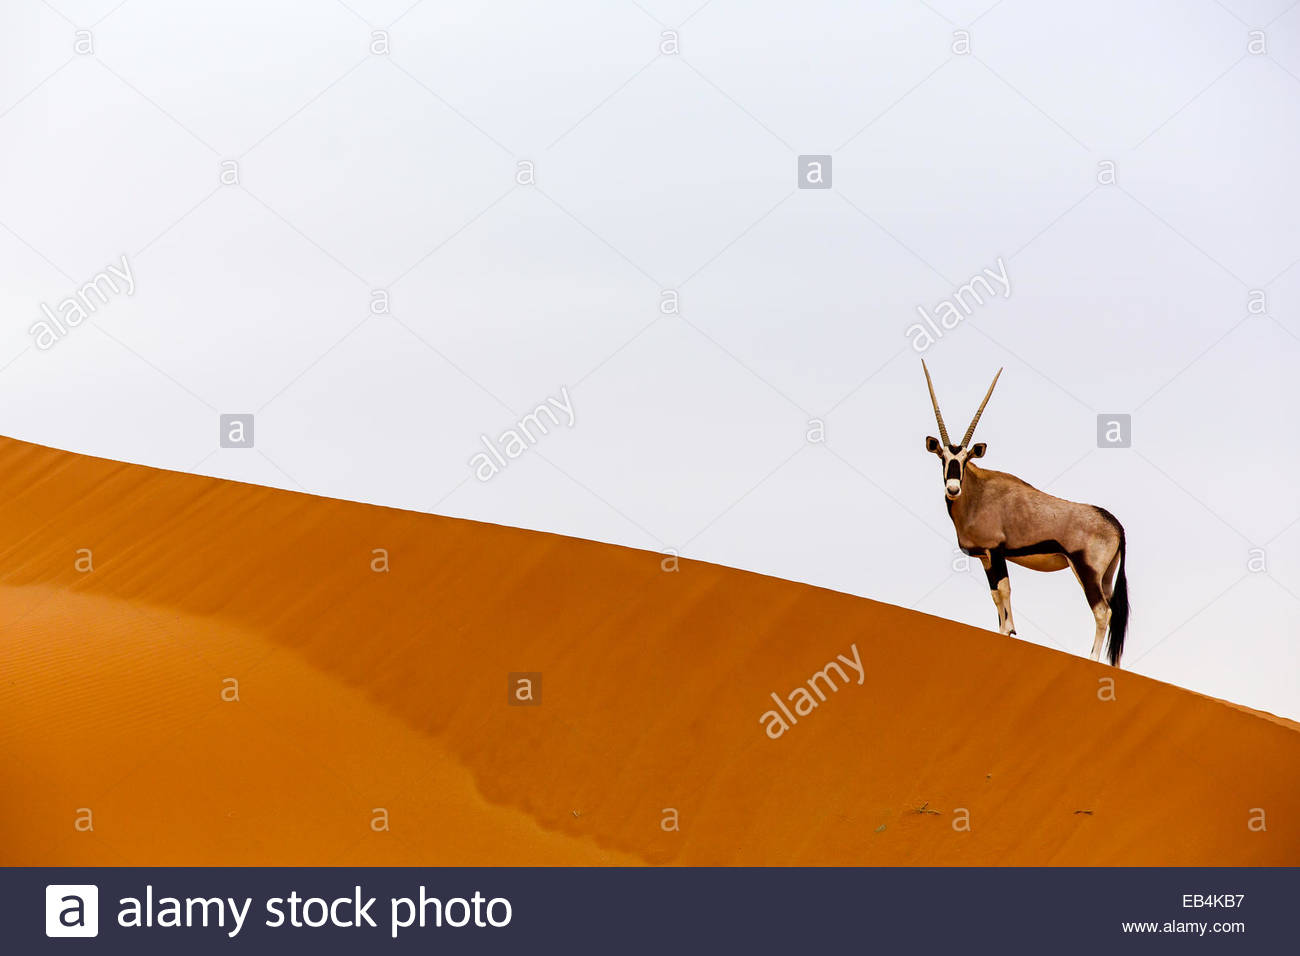 An oryx on the crest of an enormous sand dune in the Namib Desert. - Stock Image